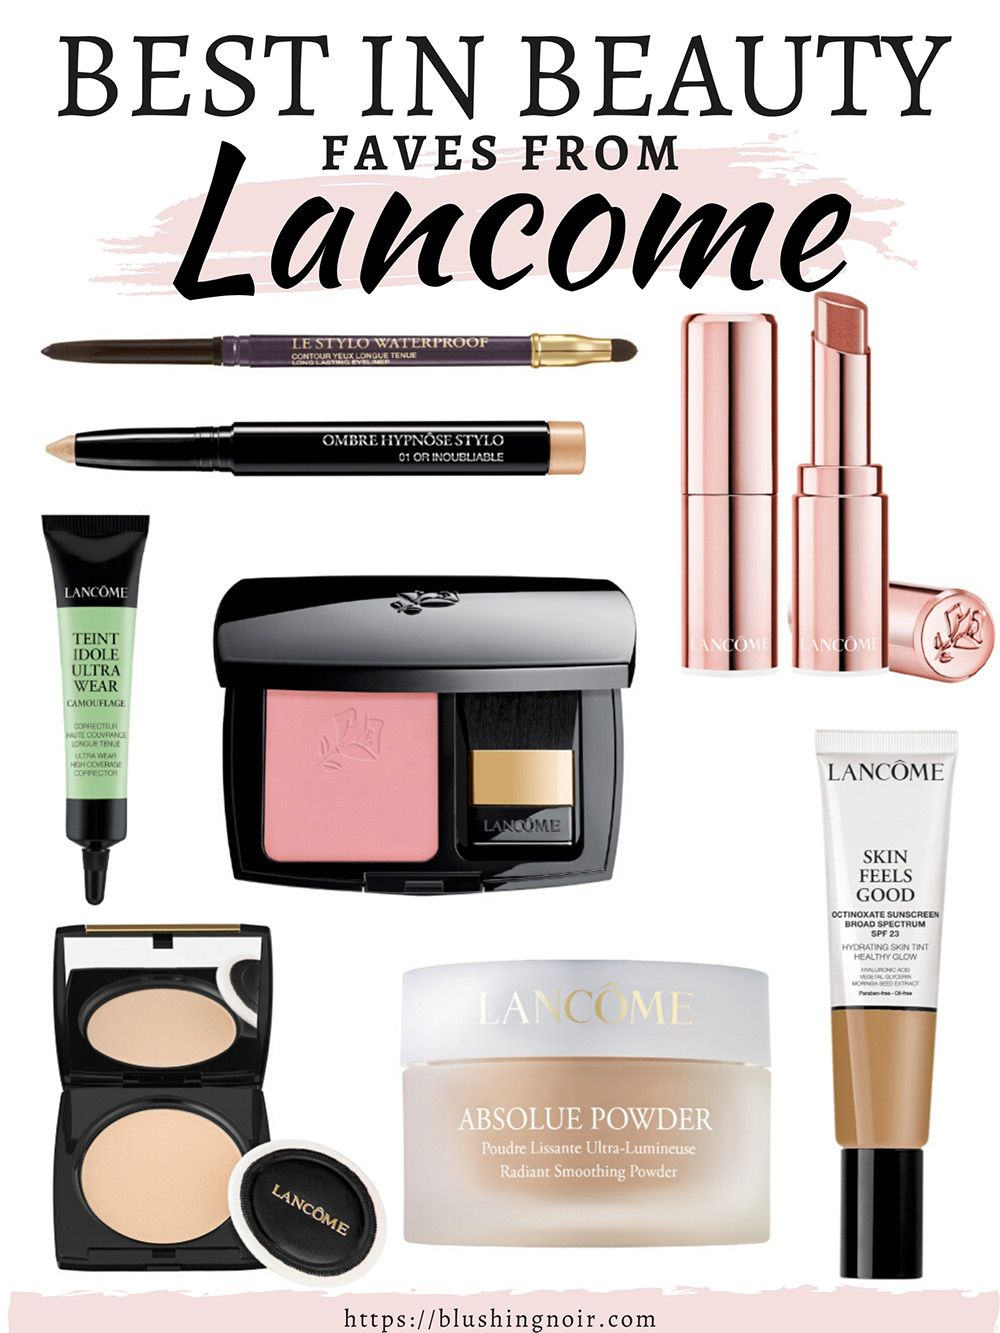 Best In Beauty Favorites Must Have Makeup Products From Lancome In 2020 Favorite Makeup Products Lancome Makeup Beauty